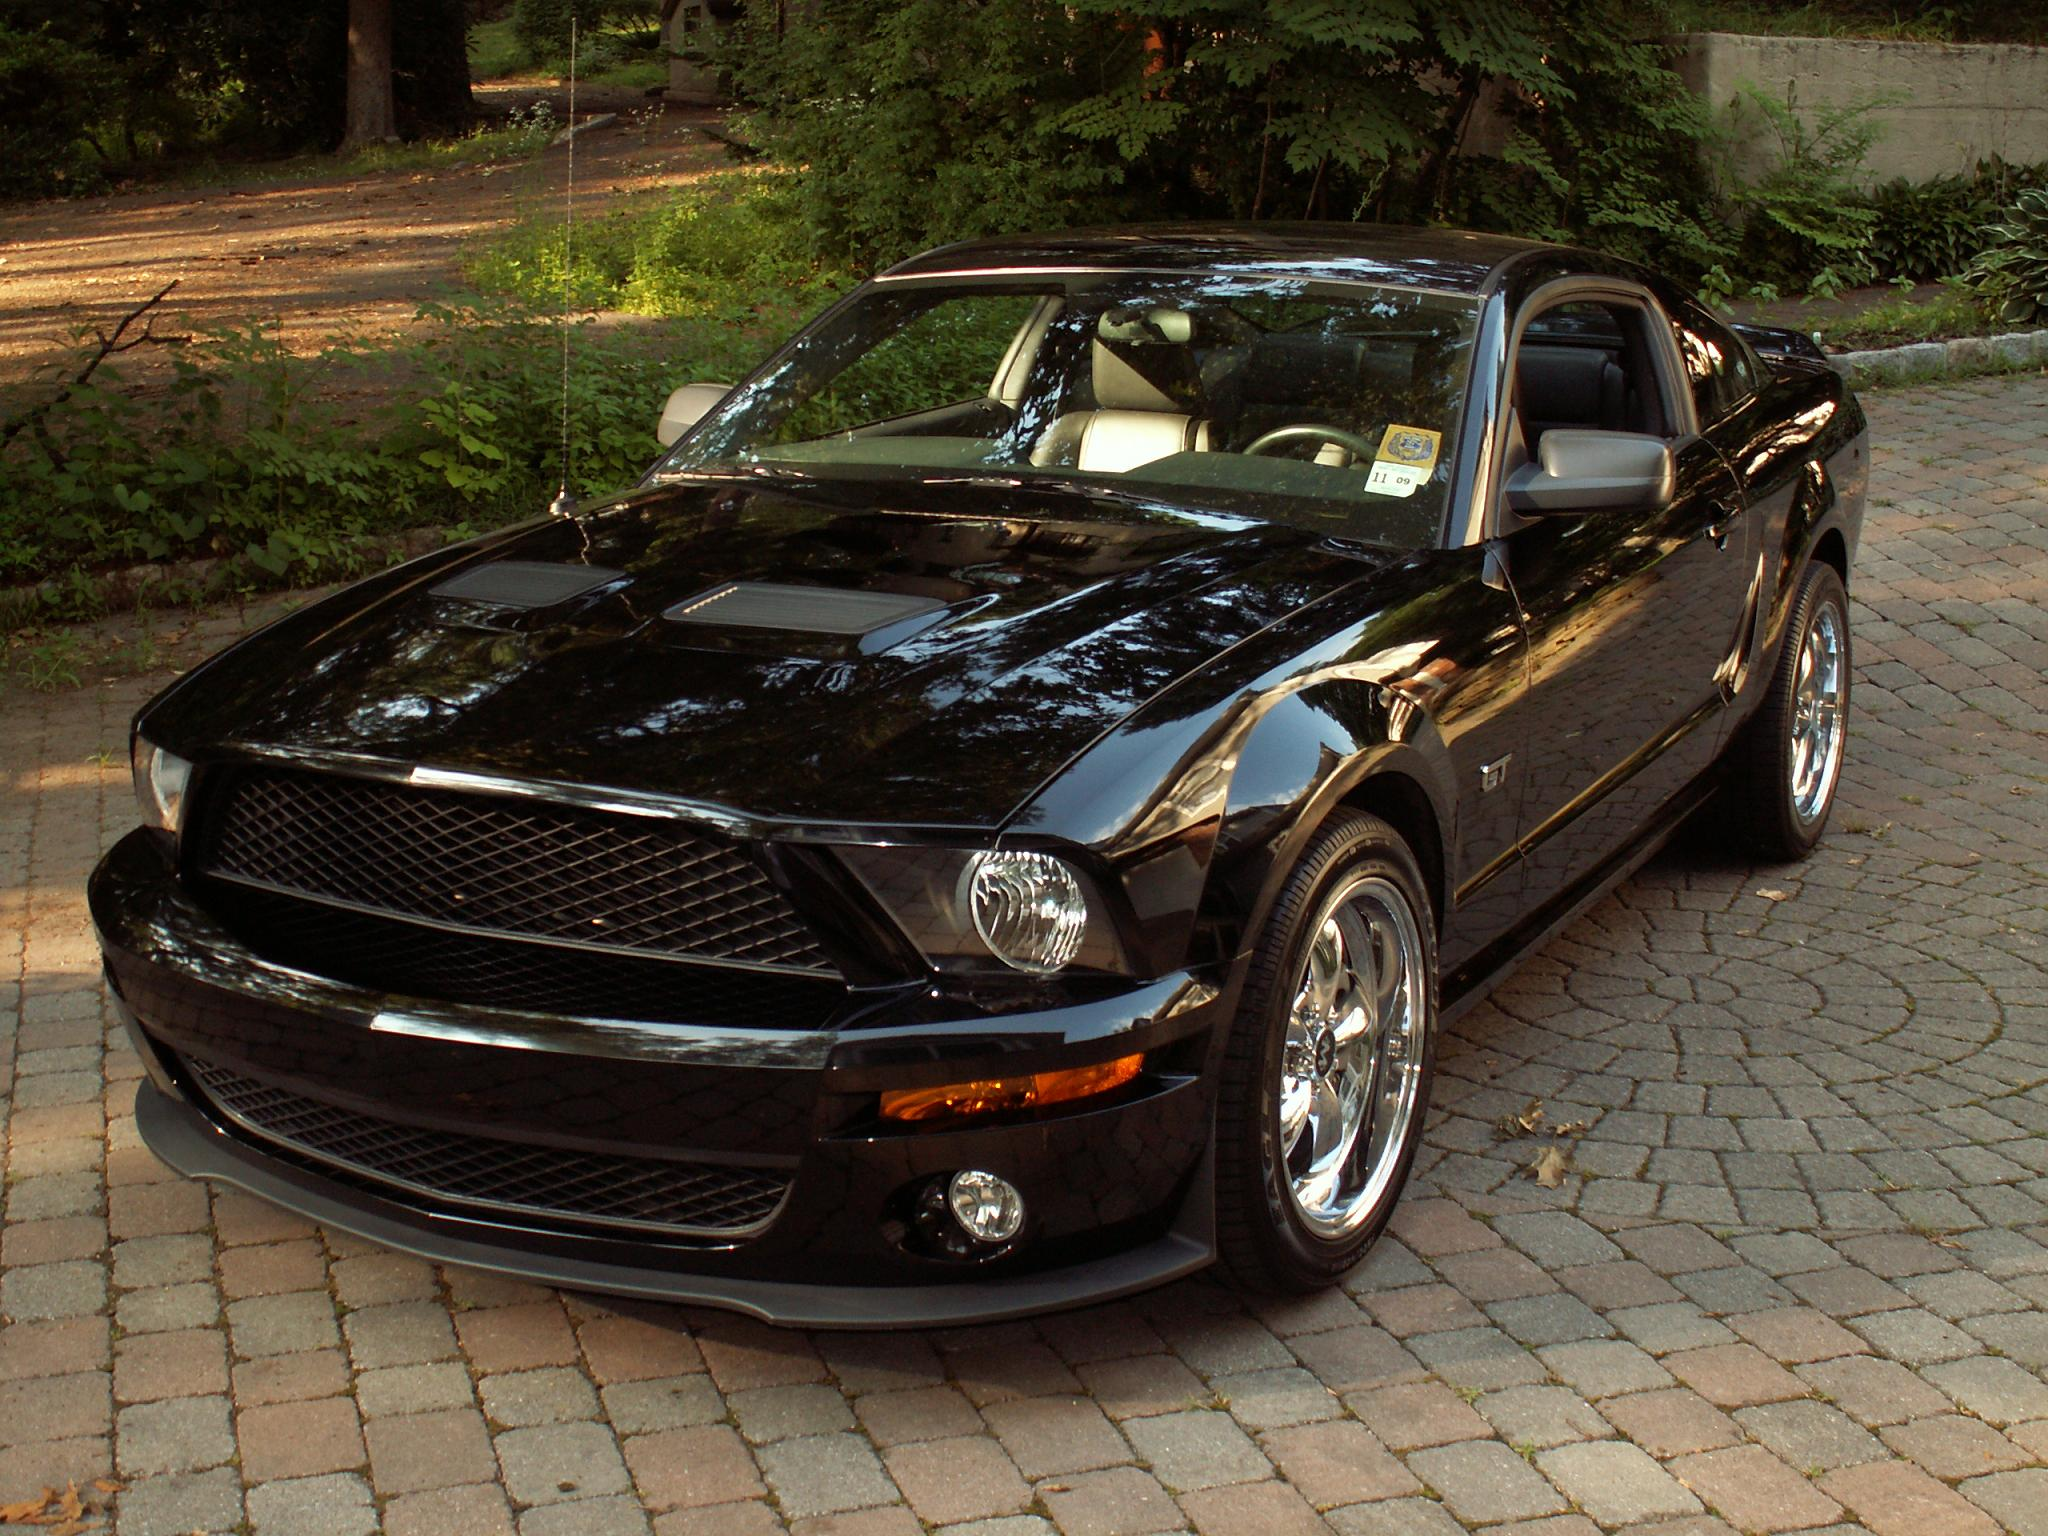 2006 Ford Mustang Gt Quarter Mile Time